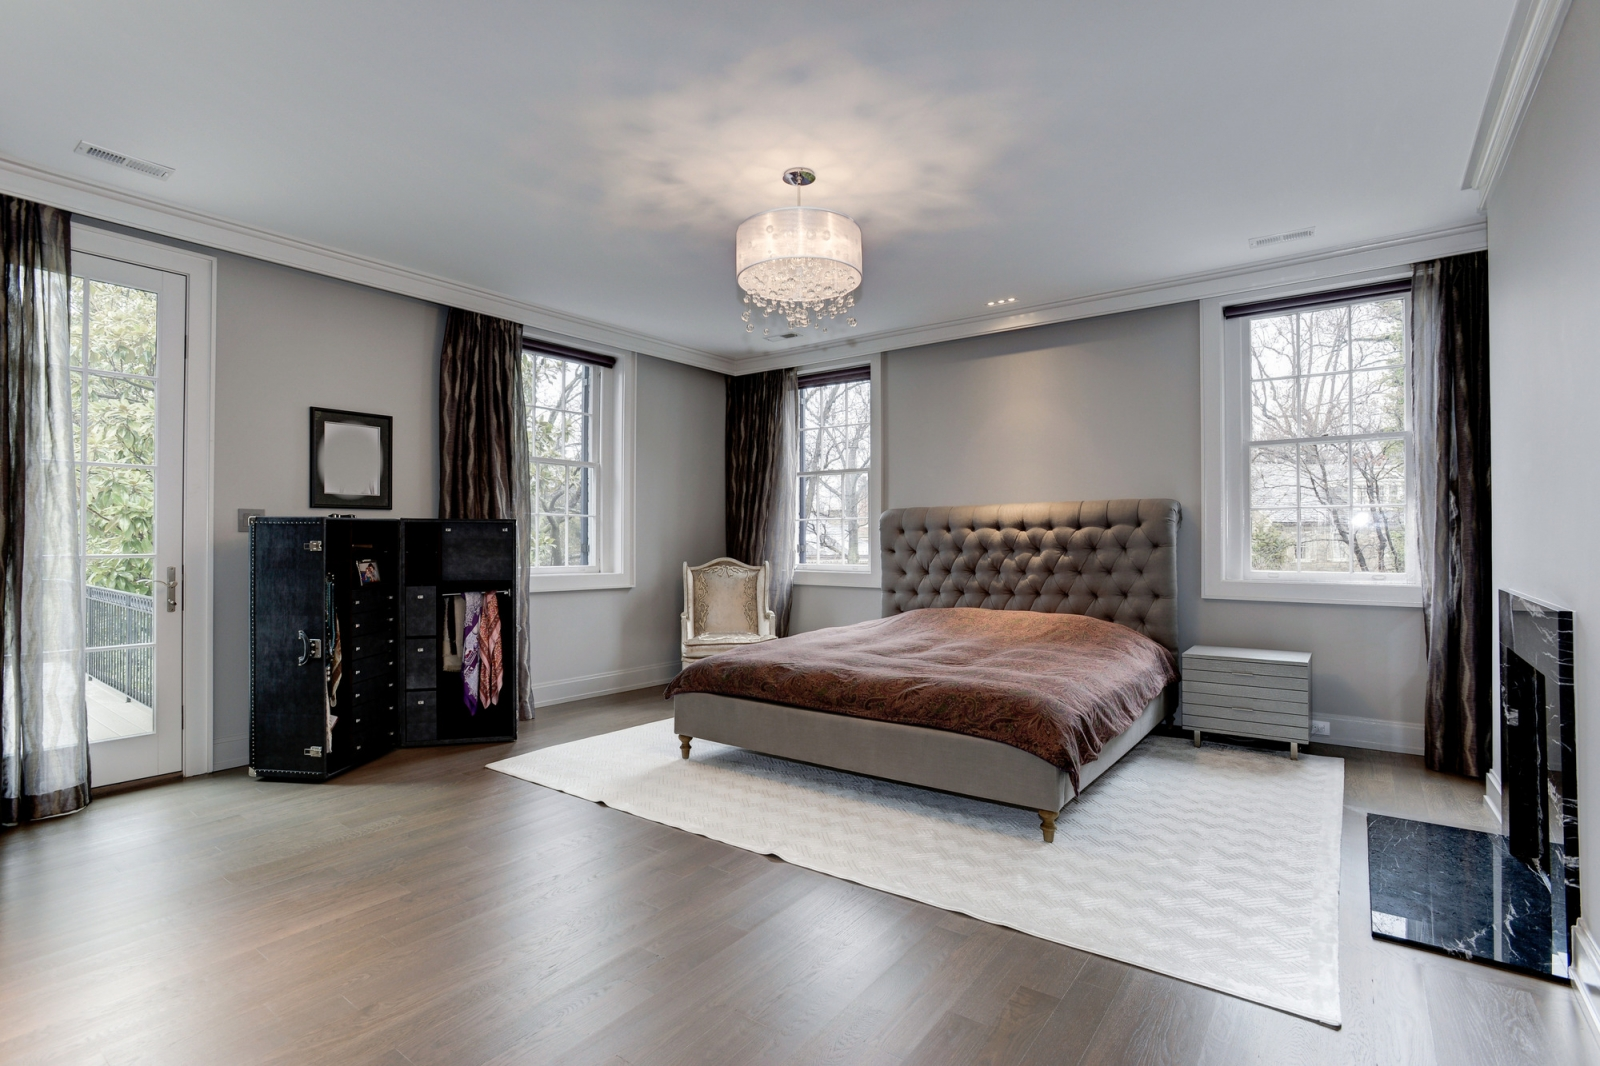 The master bedroom features a private terrace.